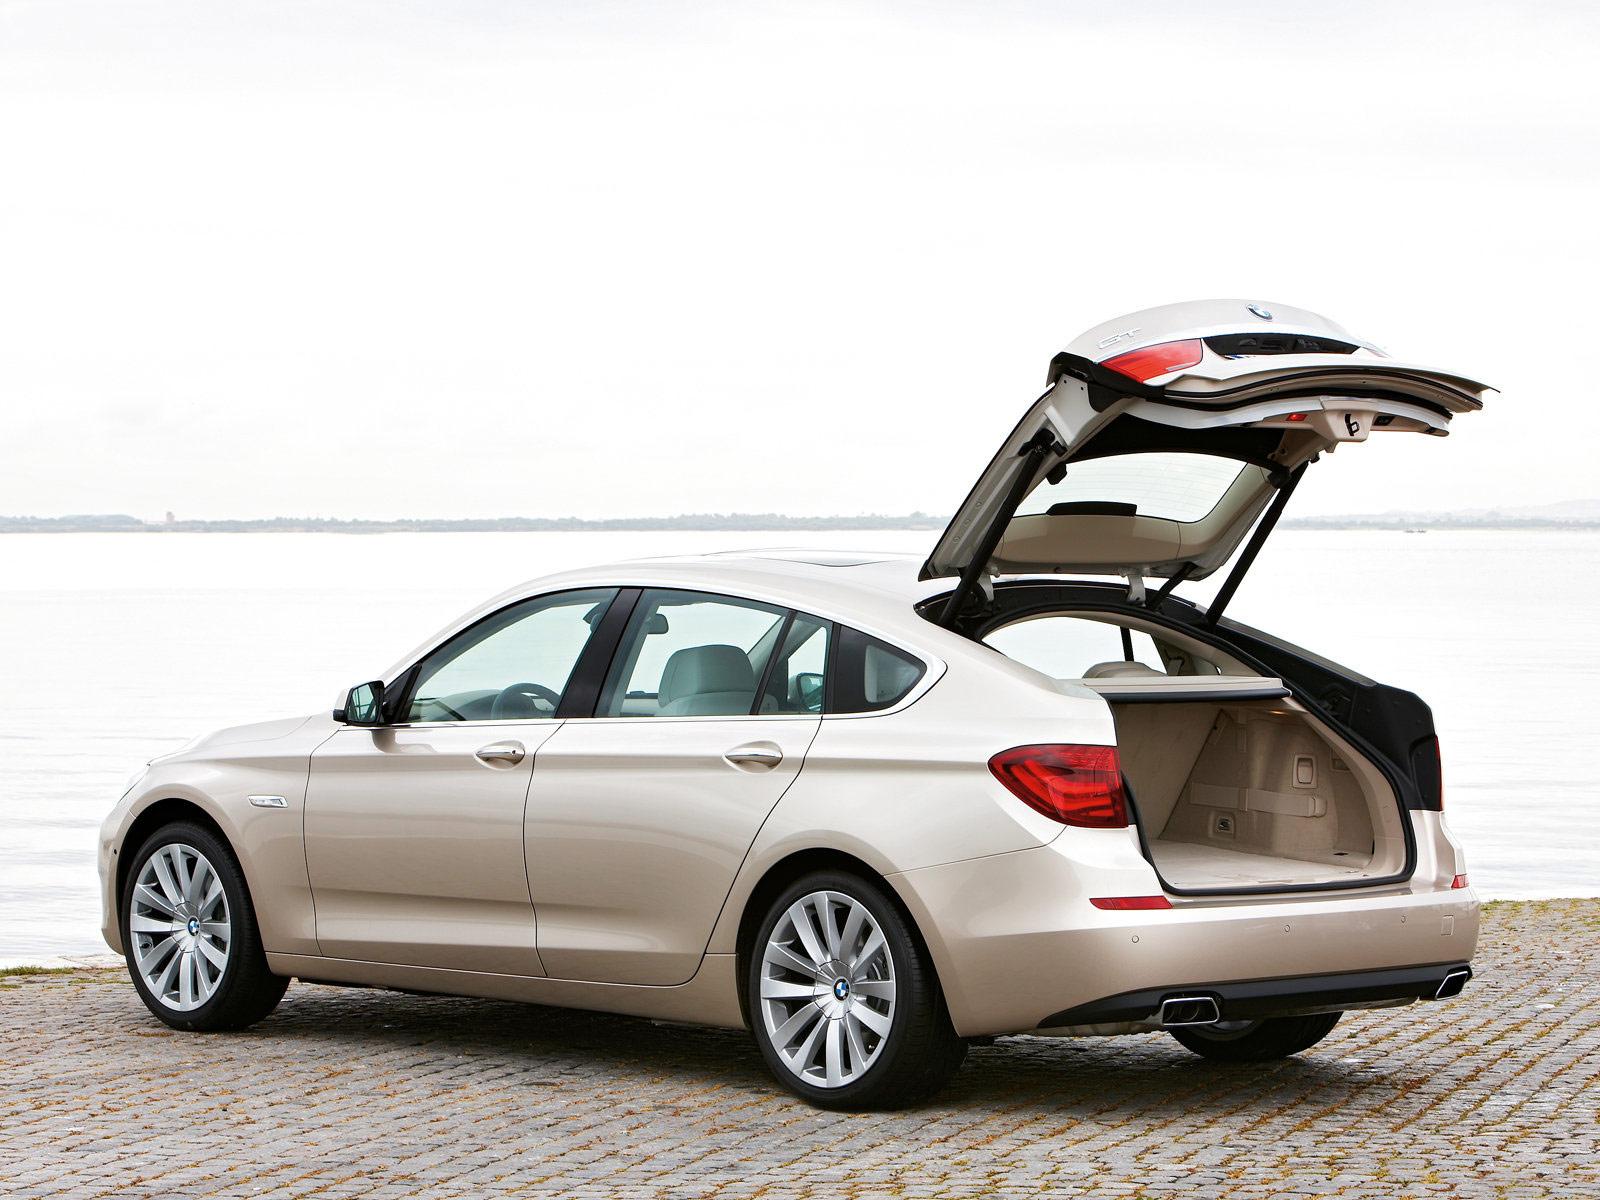 2010 bmw 5 series gran turismo accident lawyers info. Black Bedroom Furniture Sets. Home Design Ideas